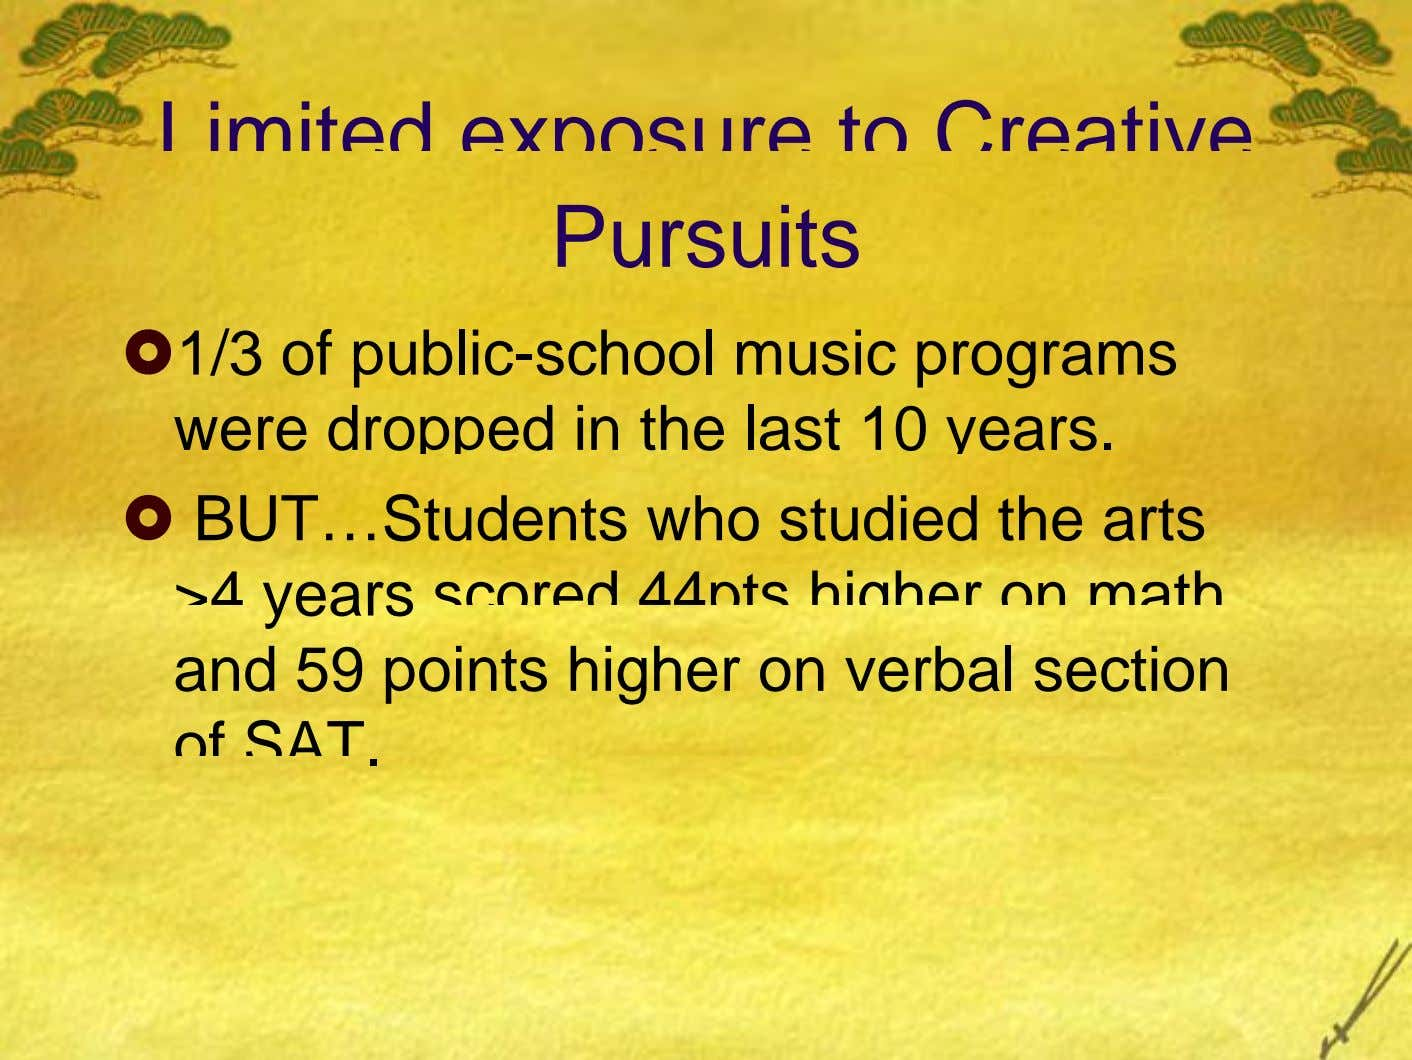 Limited exposure to Creative Pursuits 1/3 of public-school music programs were dropped in the last 10